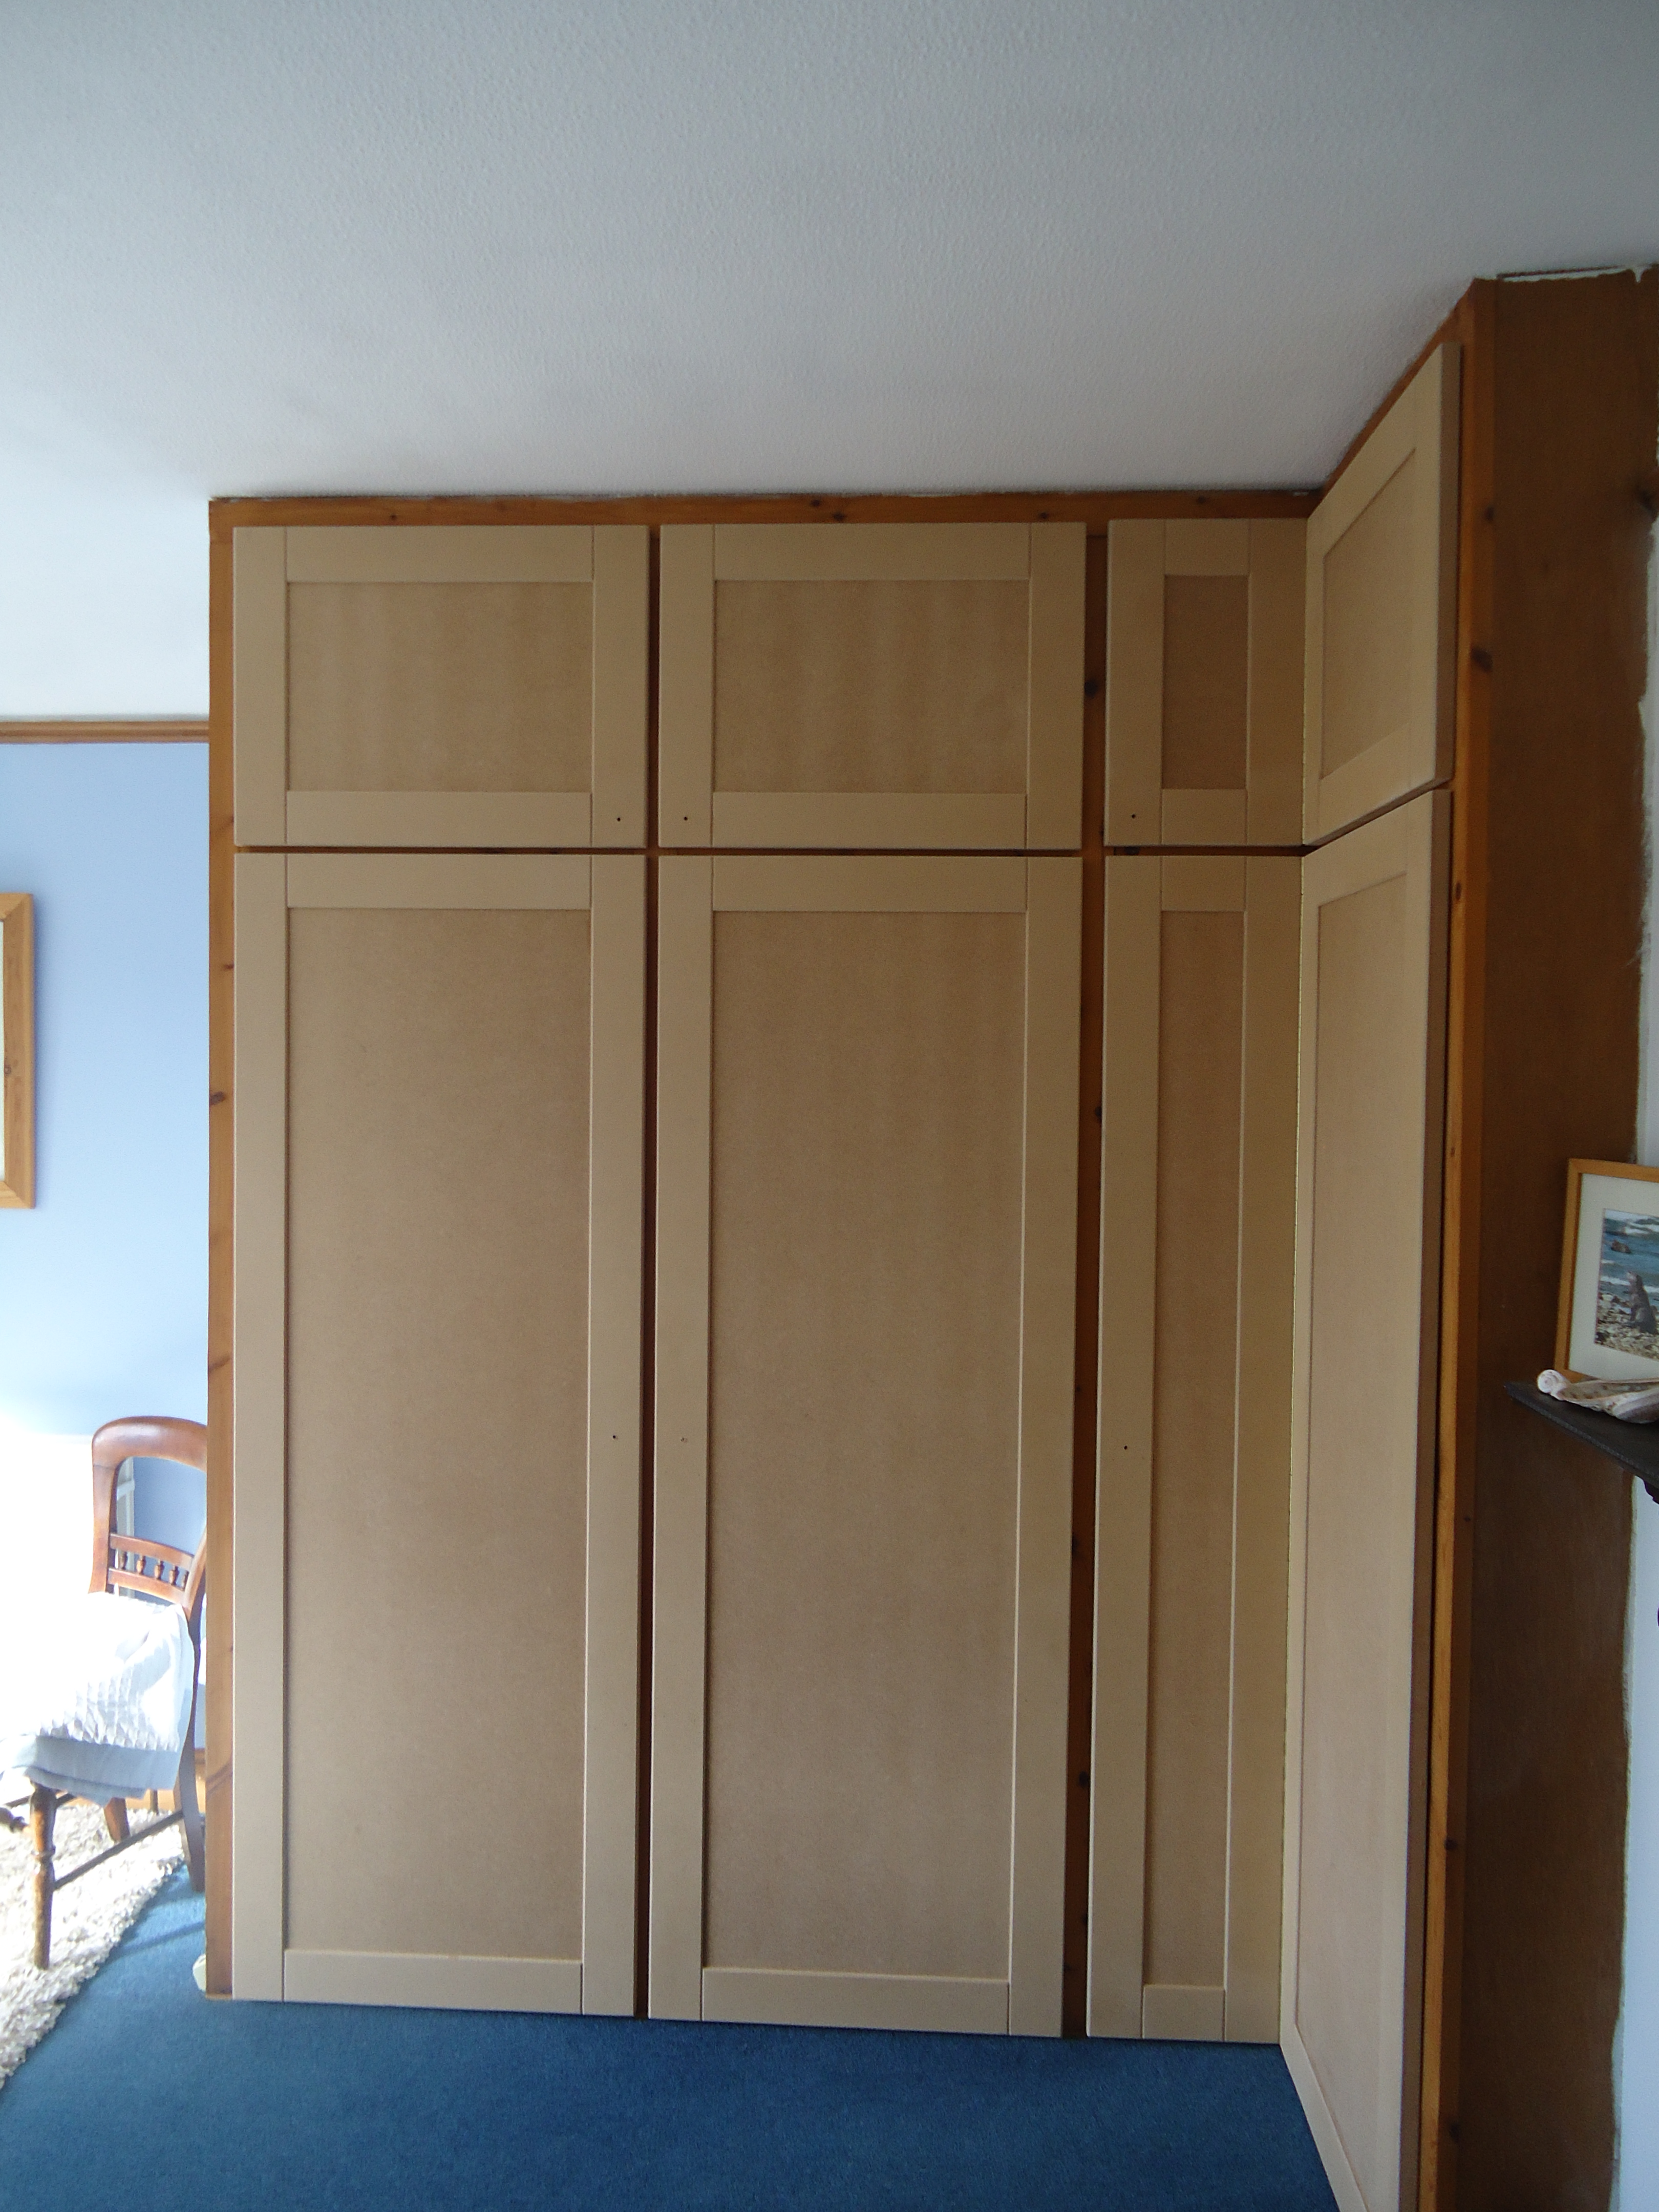 Mdf style shaker doors made for built in wardrobe